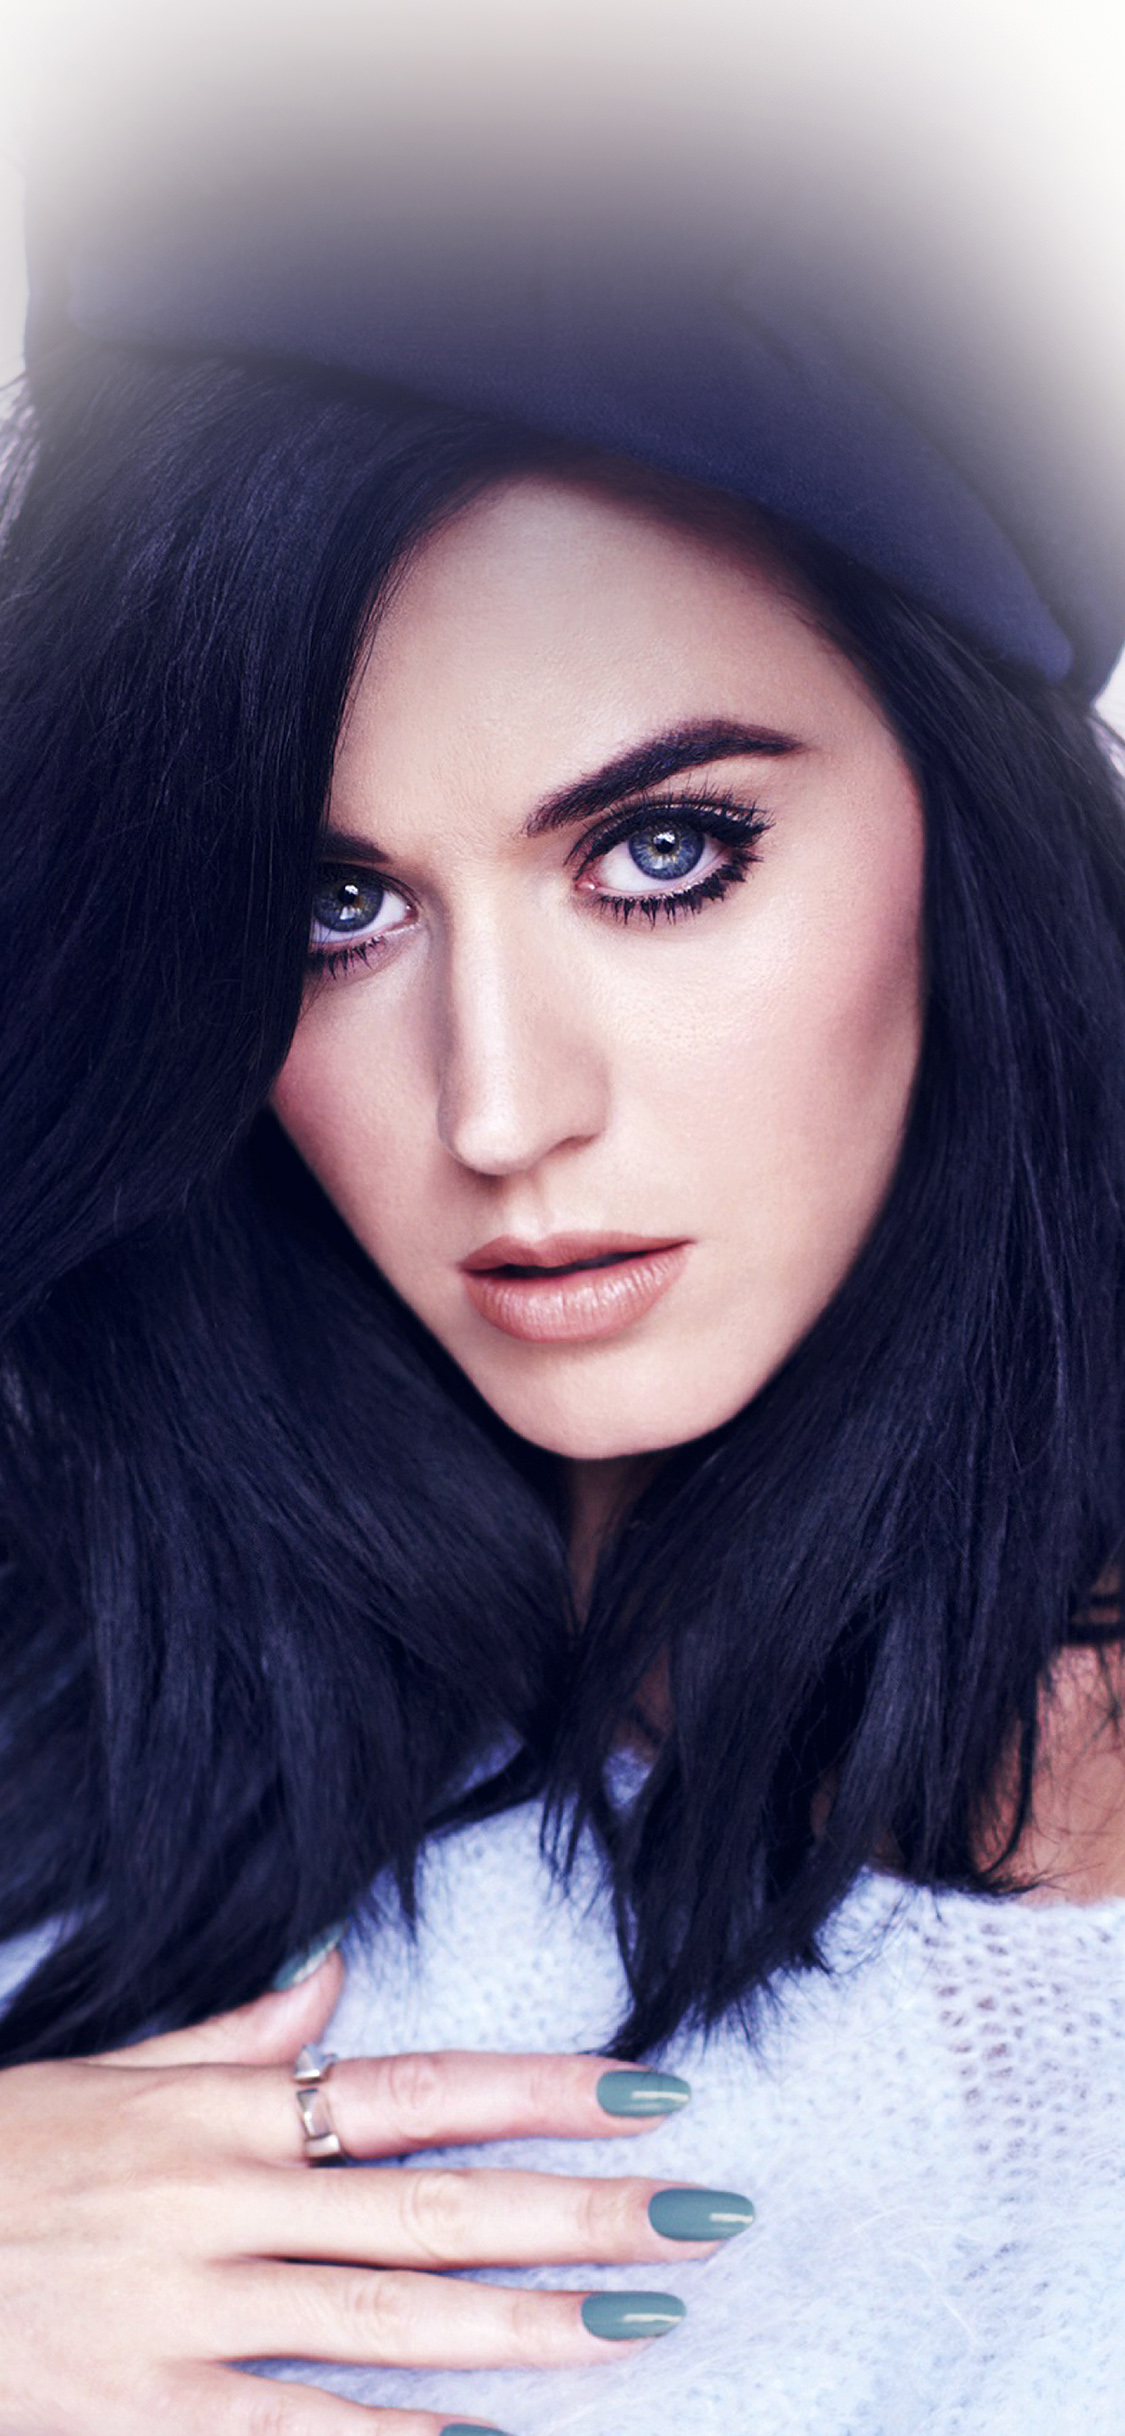 iPhoneXpapers.com-Apple-iPhone-wallpaper-hf18-katy-perry-music-artist-singer